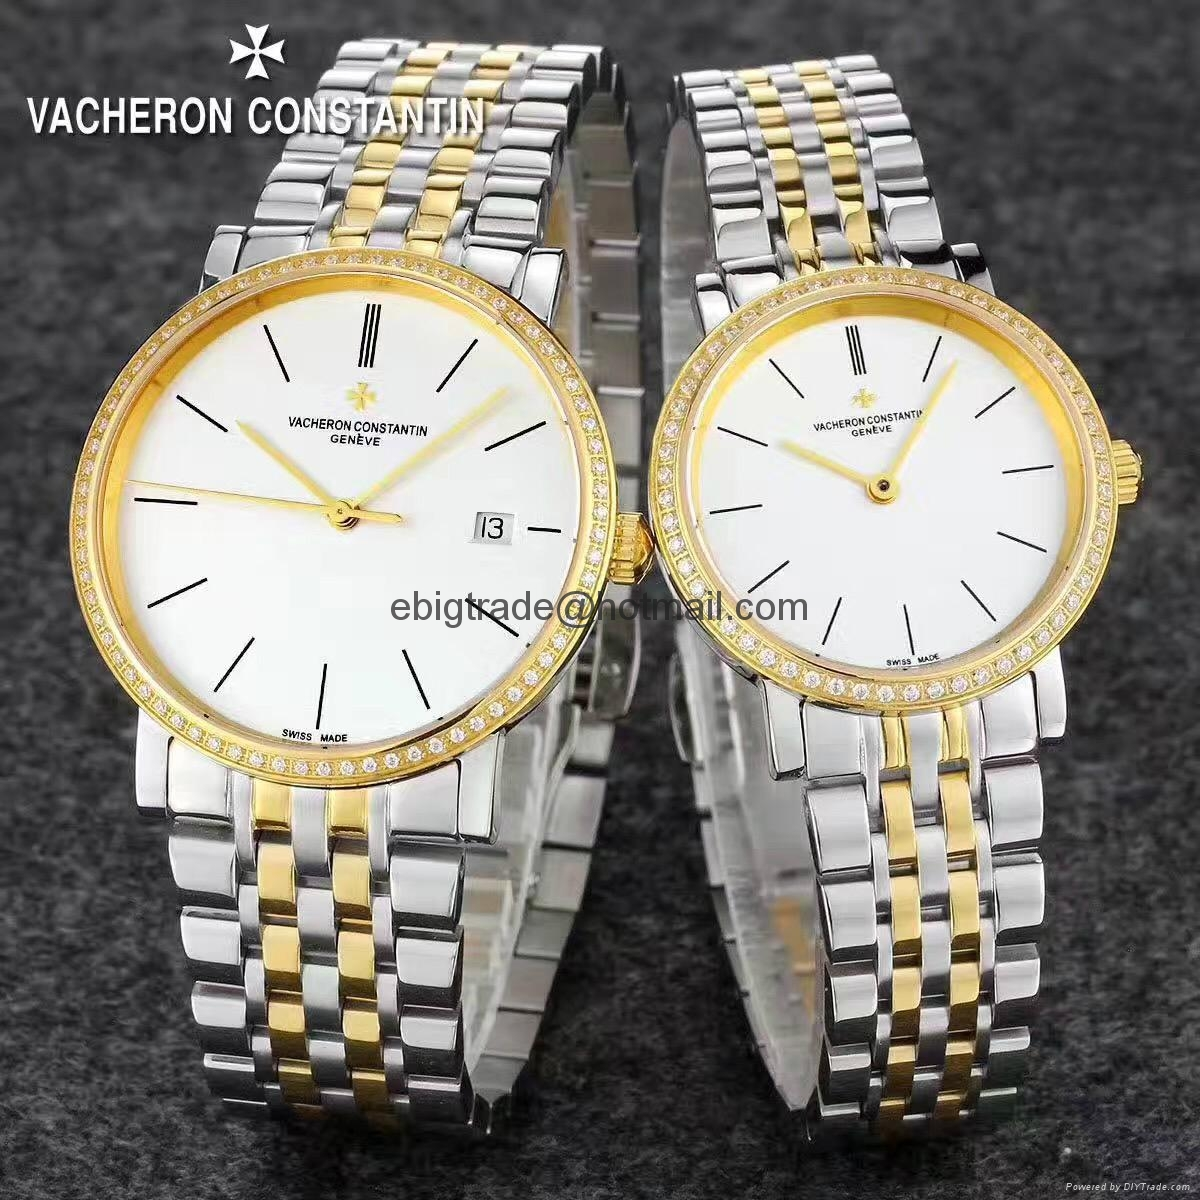 Vacheron Constantin Watches for sale